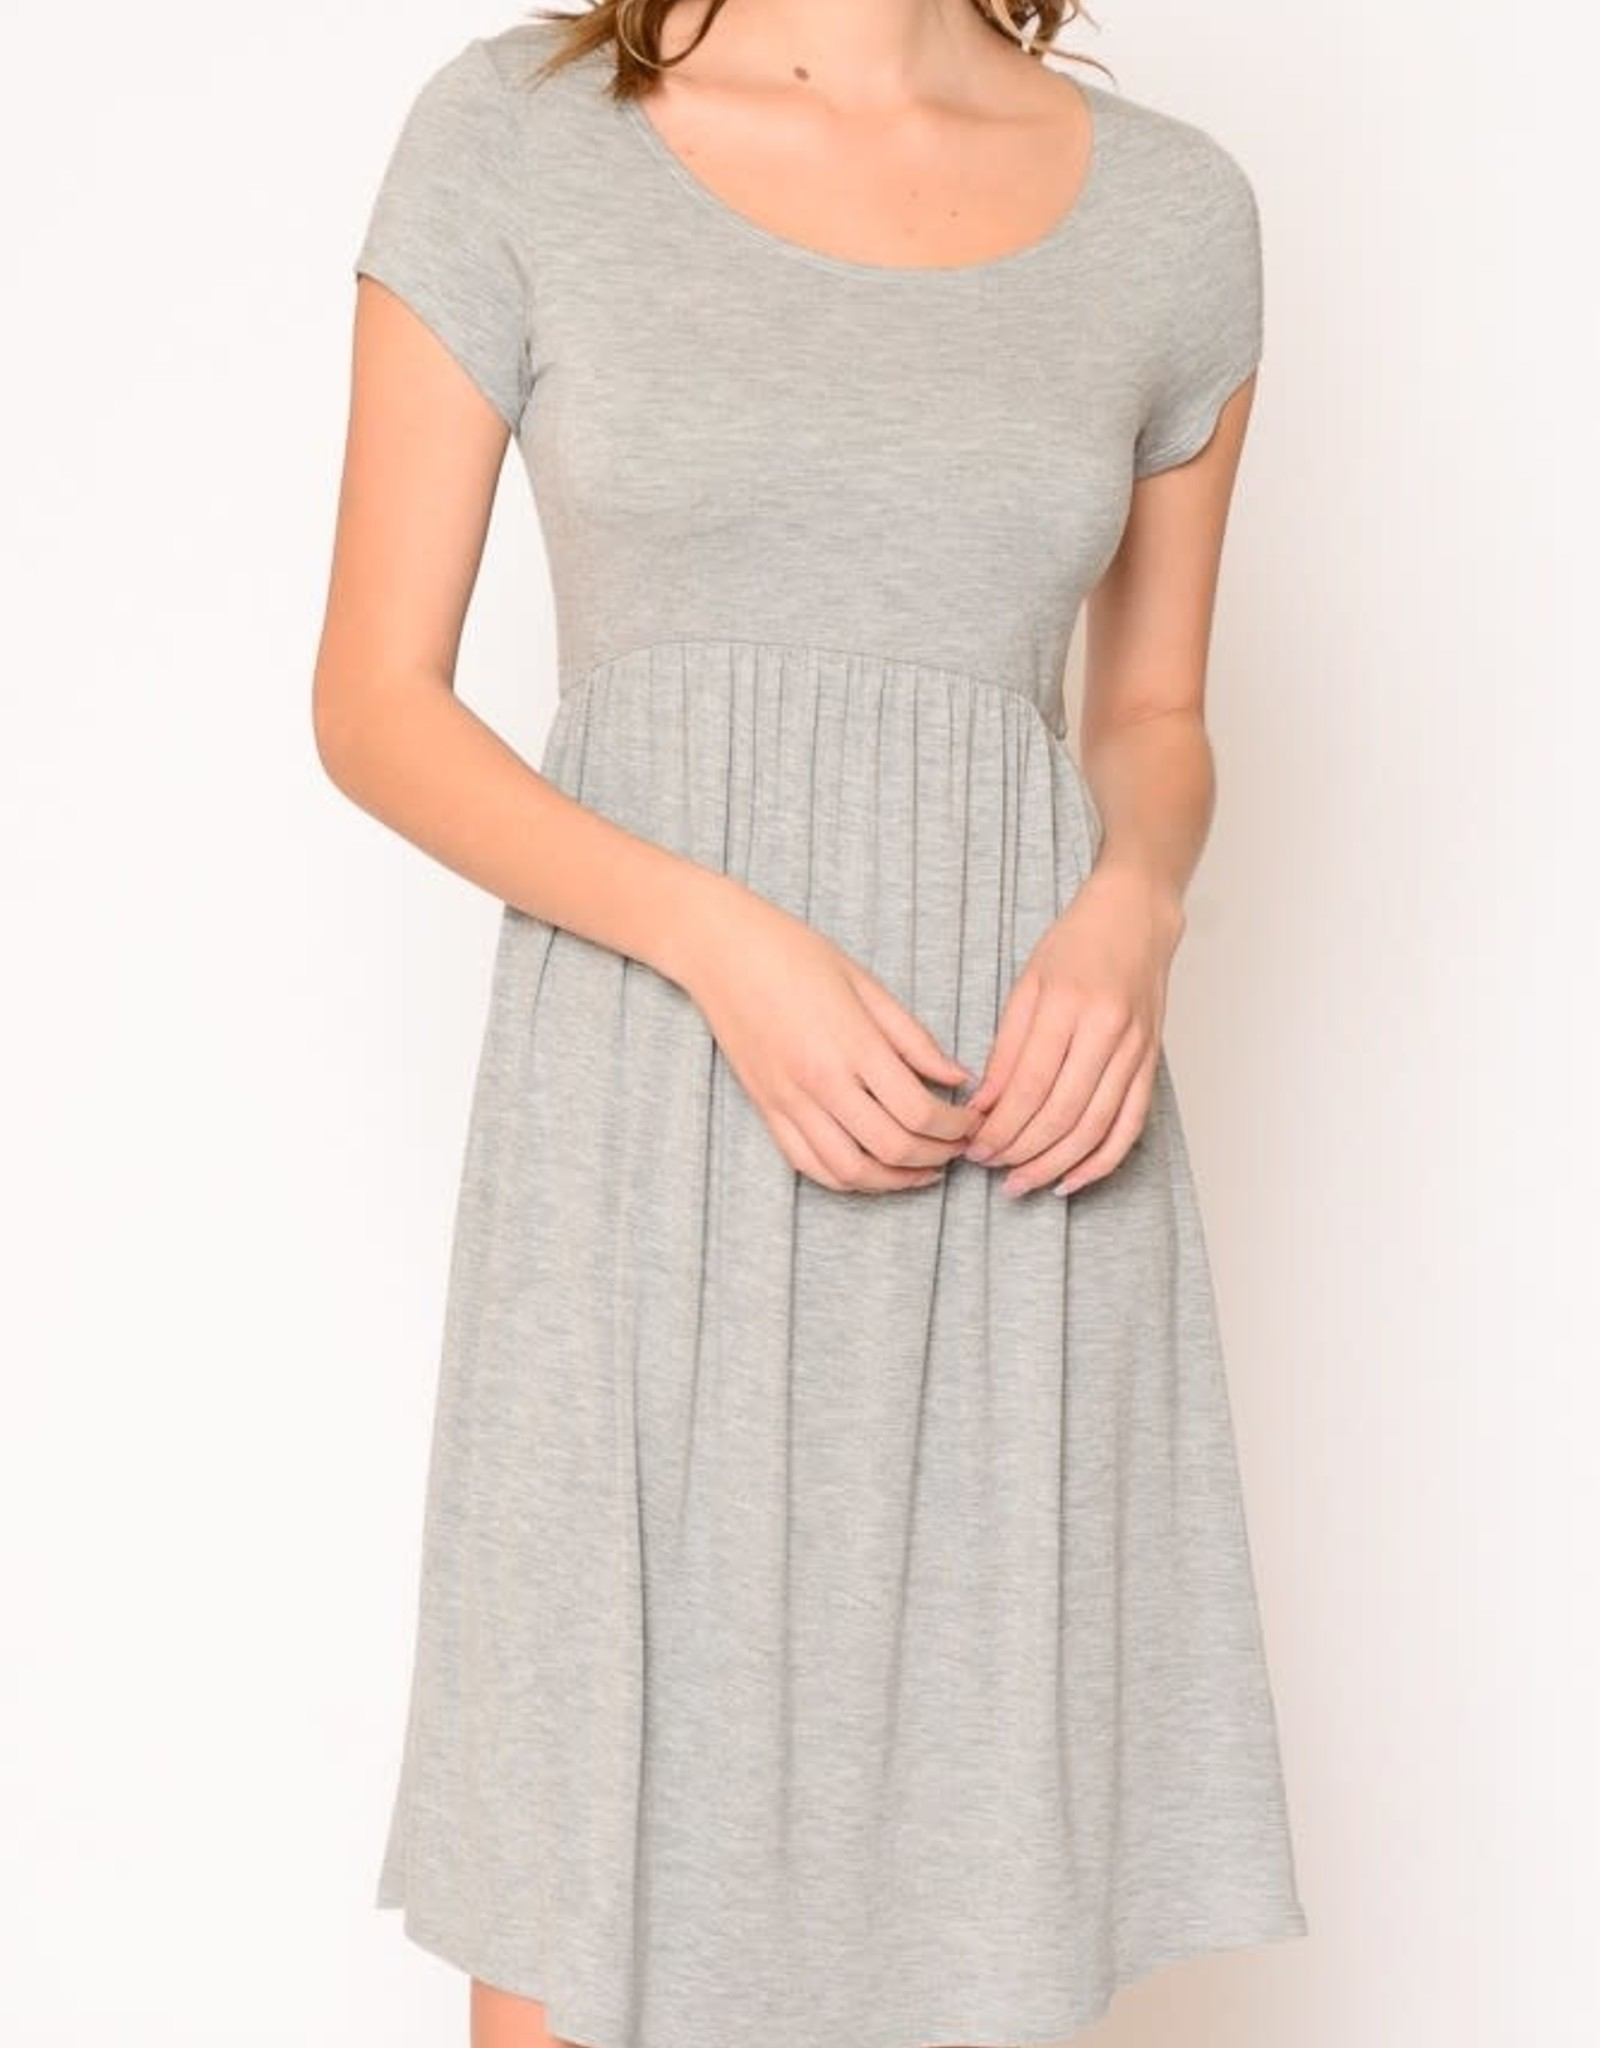 Miss Bliss Solid SS Babydoll Dress- H.Grey